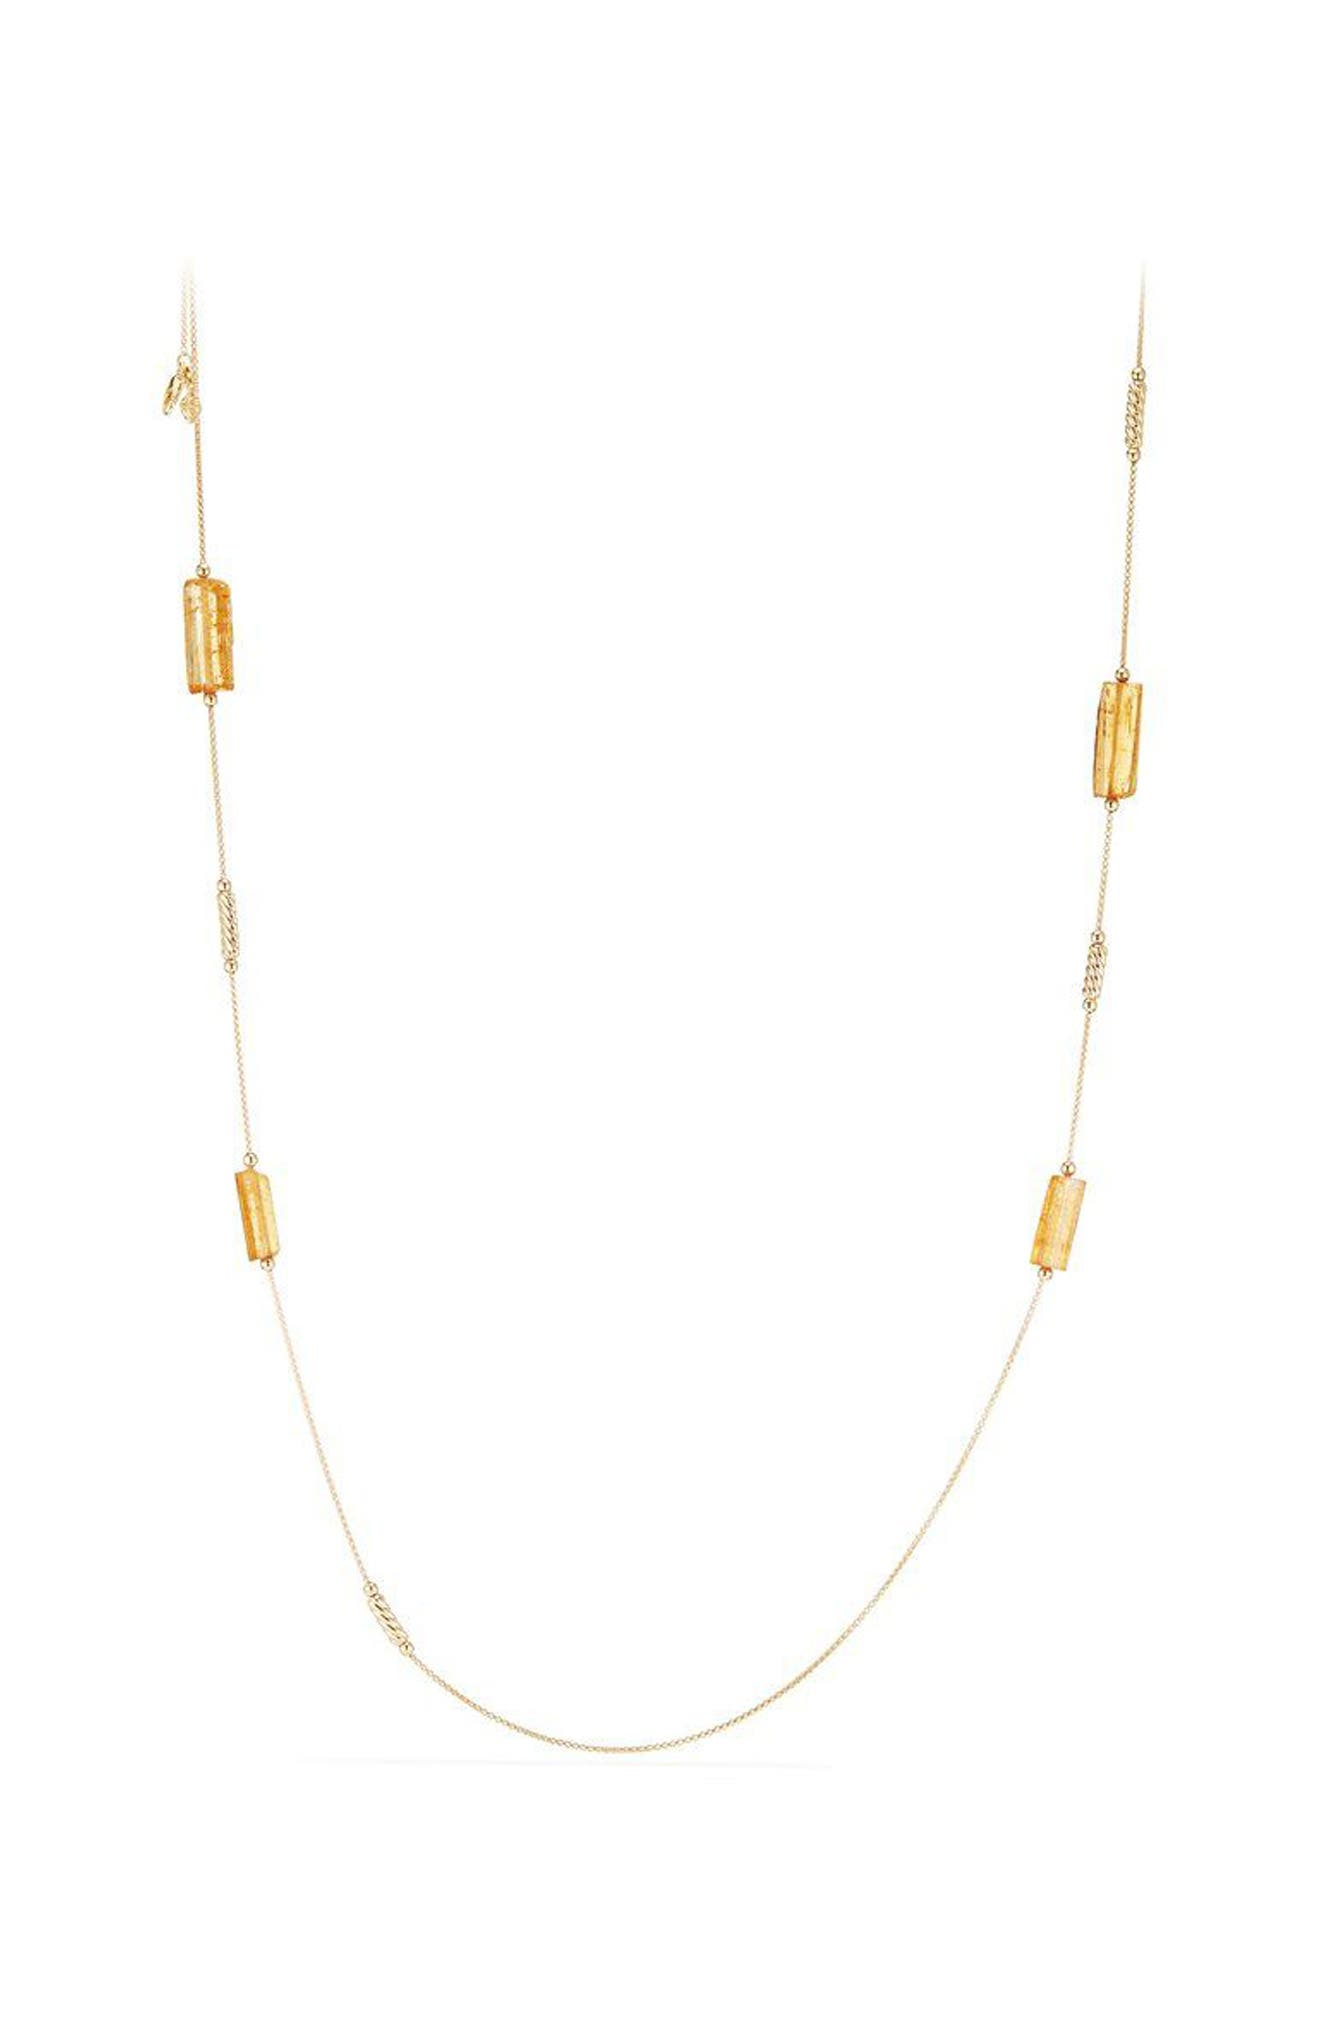 Fine Bead Imperial Topaz Chain Necklace,                             Main thumbnail 1, color,                             Gold/ Imperial Topaz